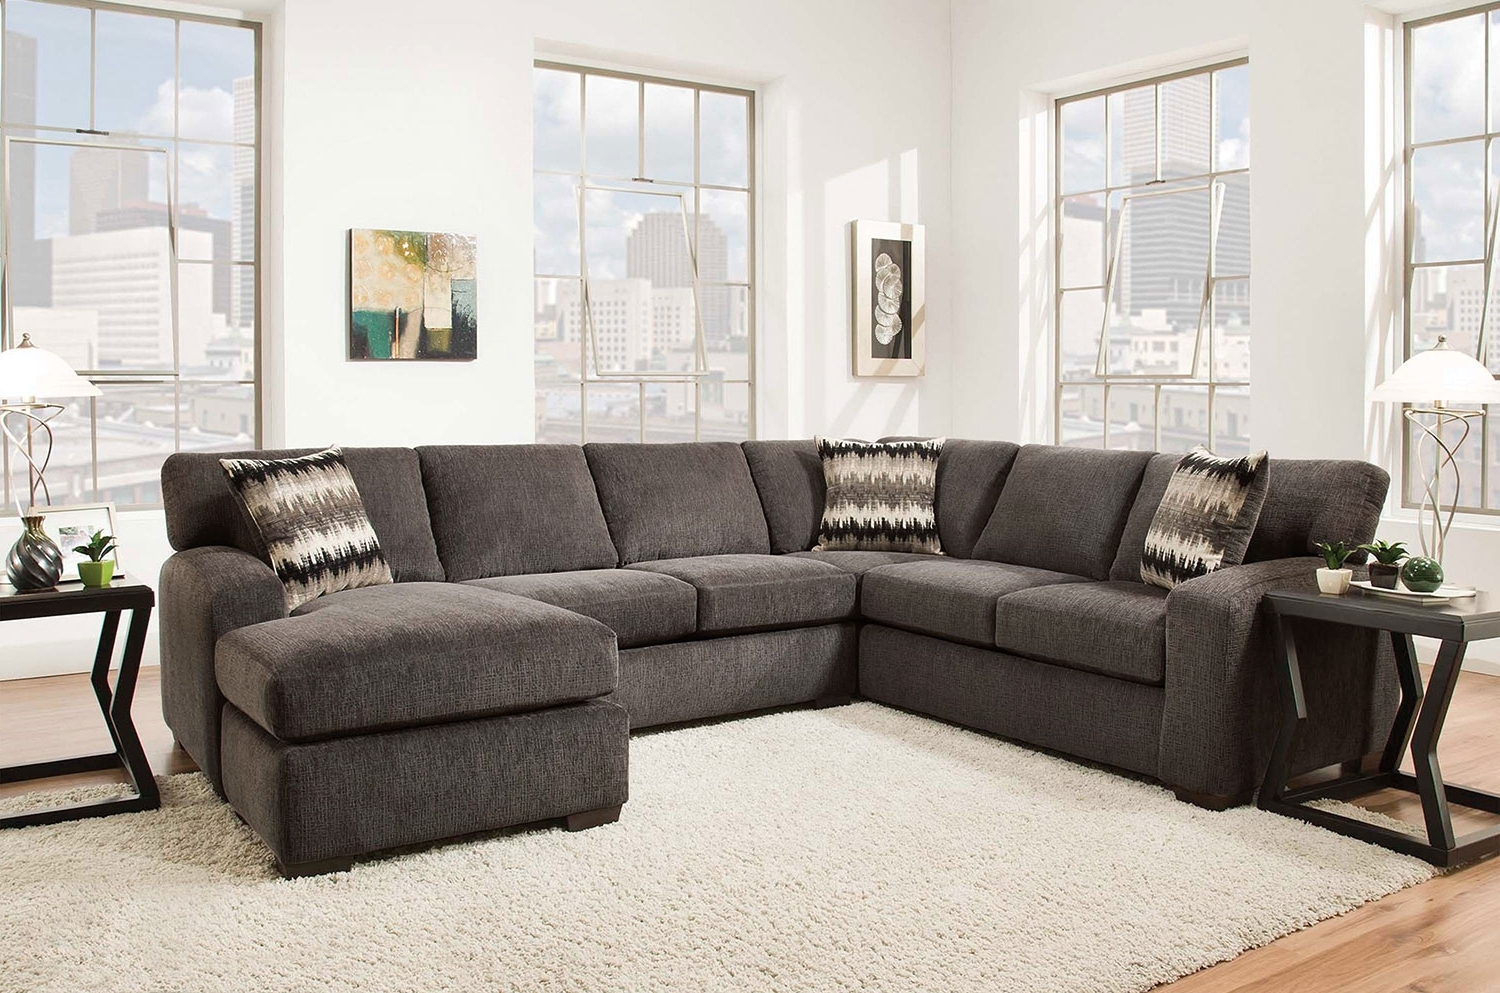 Fenella 2 Piece Right Facing Sectional – Smoke (View 6 of 20)